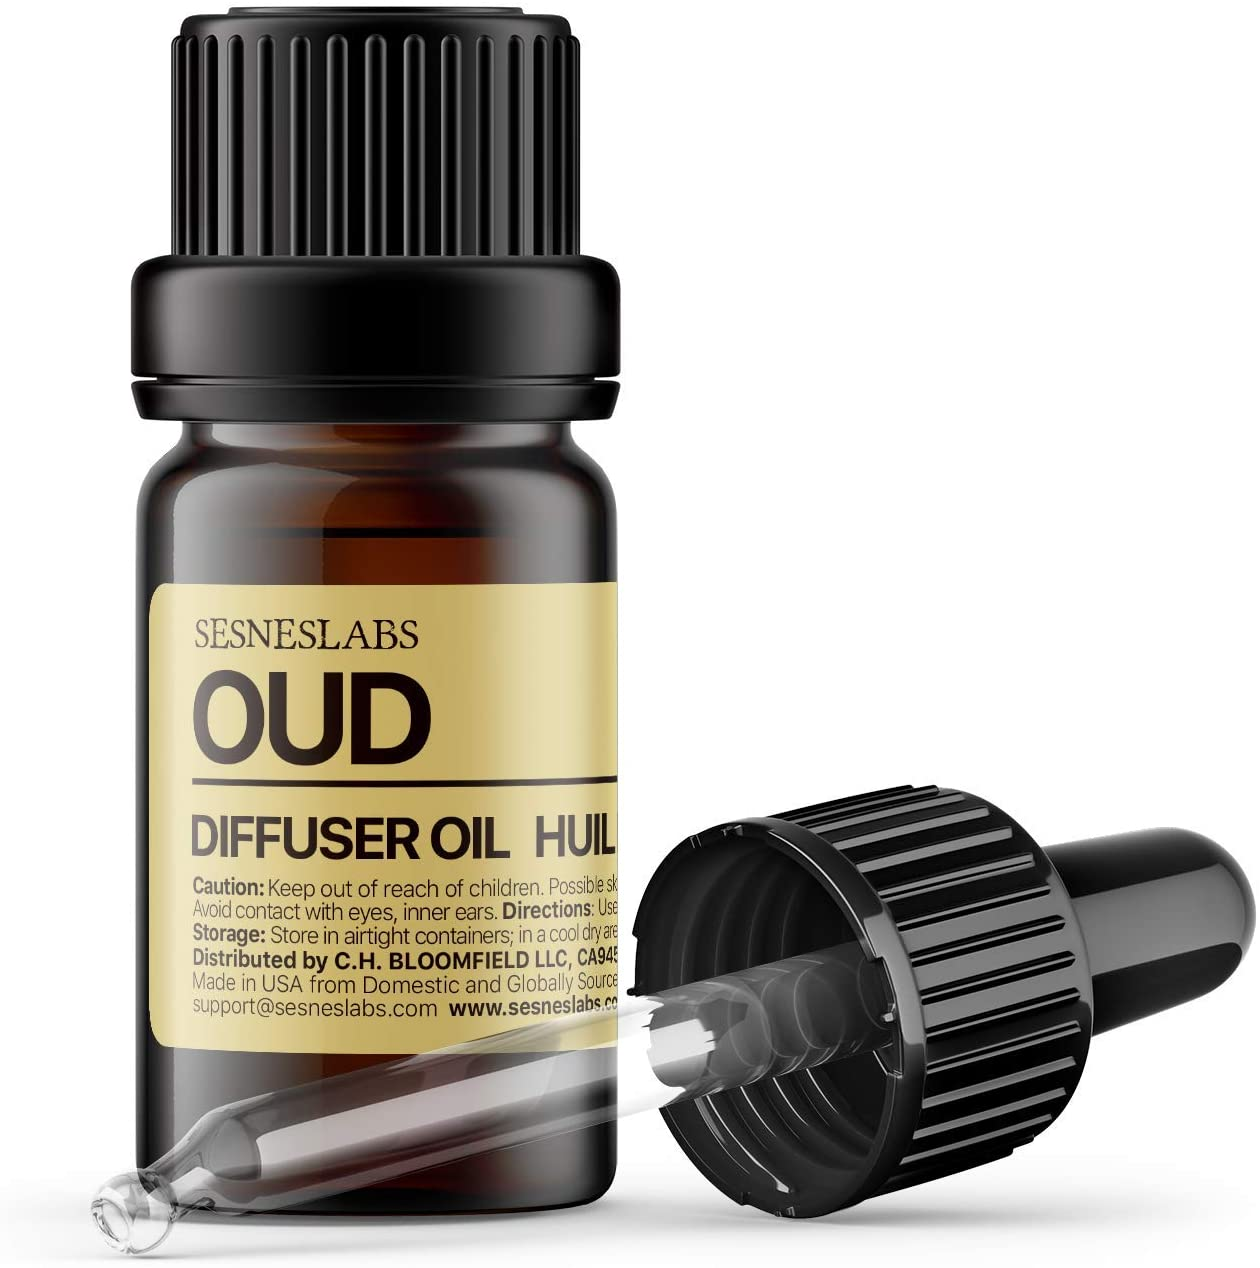 Oud Diffuser Oil, Niche Scent, Luxury Chinese Pepper, Rosewood, Cardamom, Vetiver, Oud, Tonka Bean, Musk Essential Oils Blend for Ultrasonic Diffuser Scent Projects(.33 oz/10 ml)